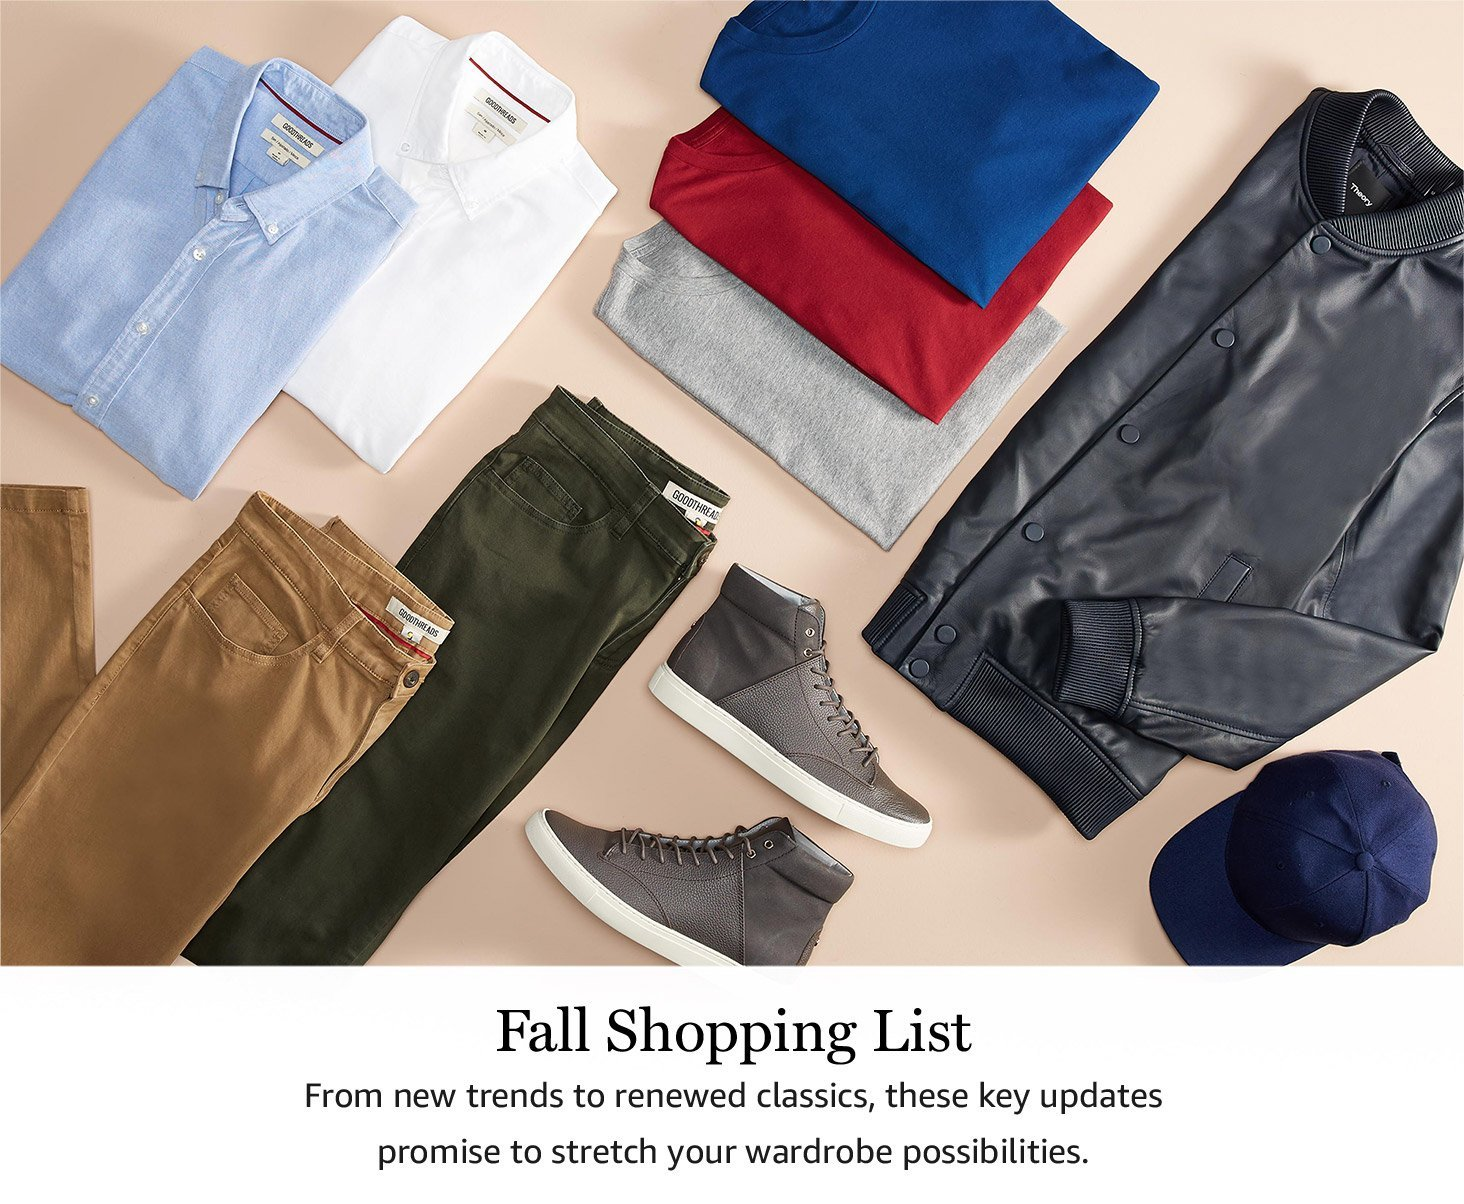 Fall Shopping List